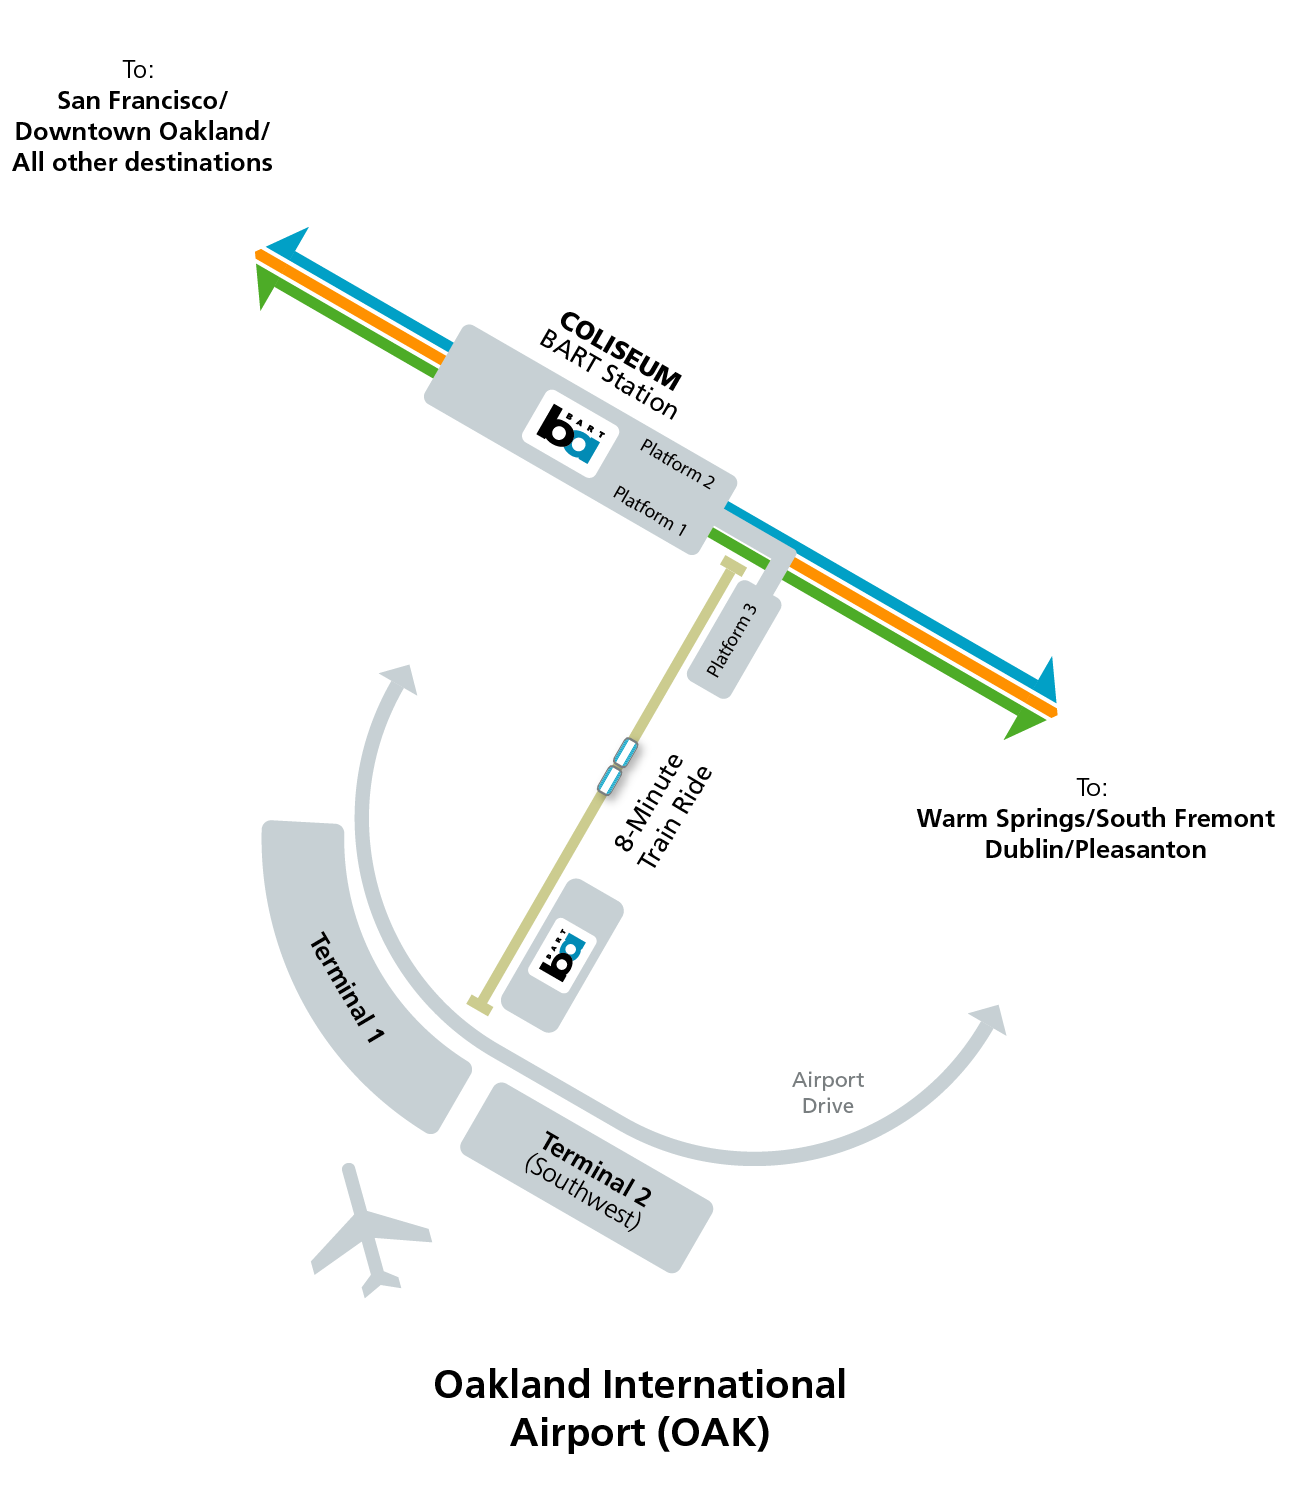 airport connections (sfo & oak) | bart.gov